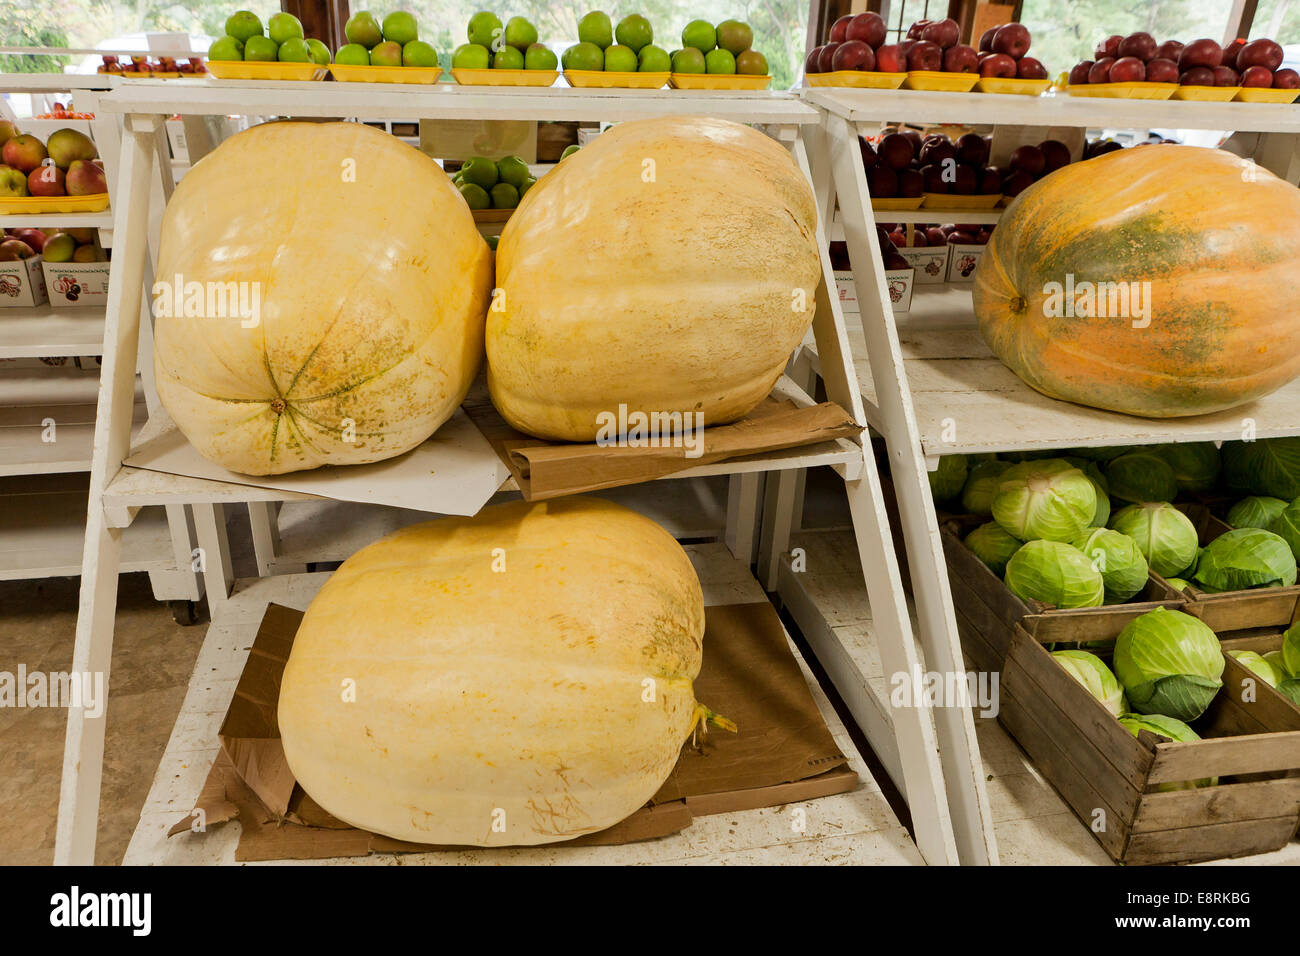 Giant pumpkins at farmers market - Pennsylvania USA - Stock Image